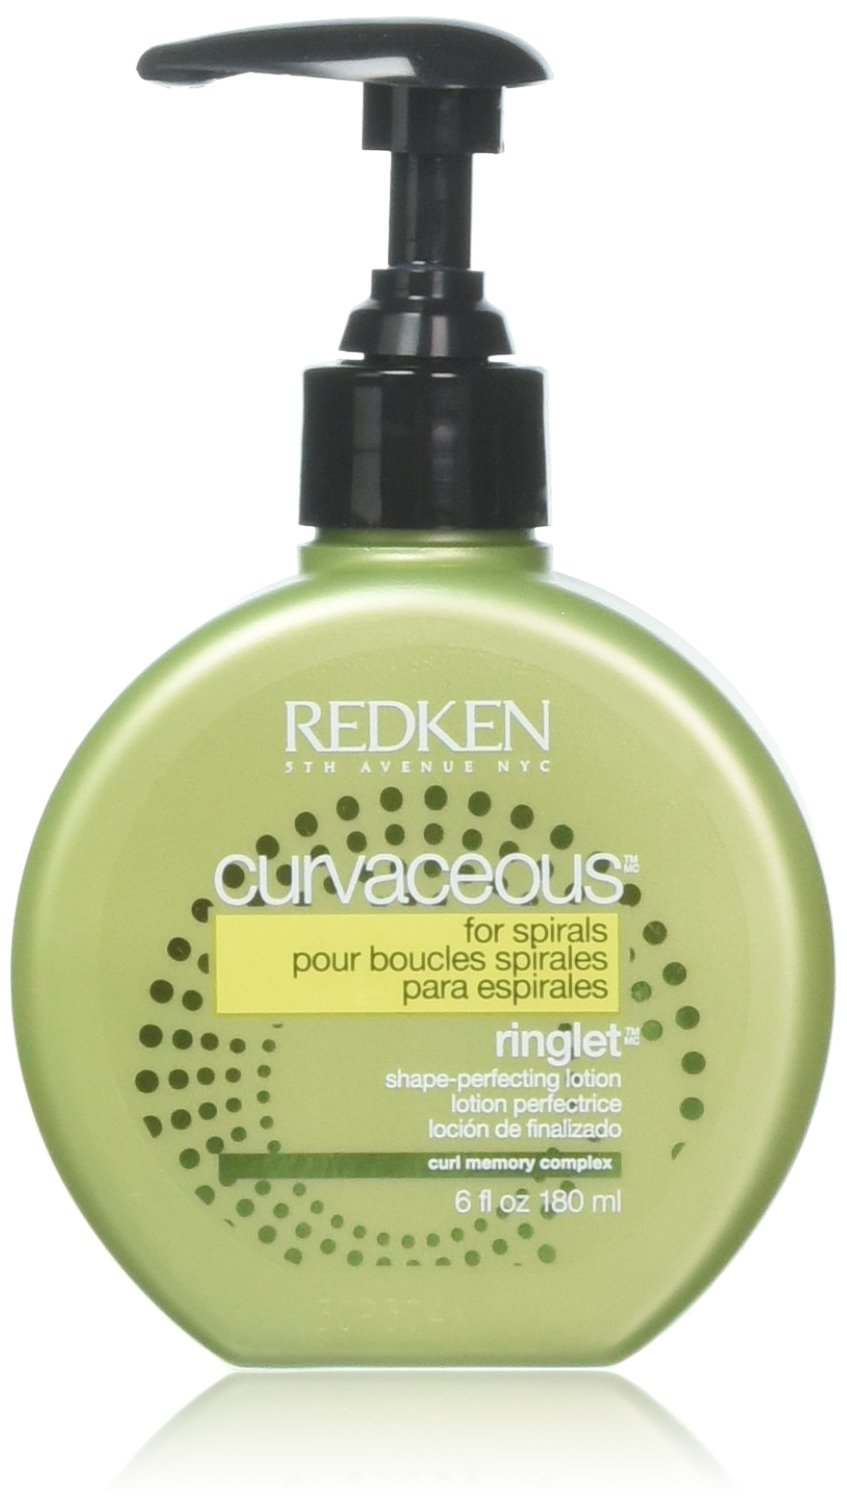 Redken Curvaceous Ringlet Anti-Frizz Perfecting Hair Treatment Lotion, 6 oz by REDKEN